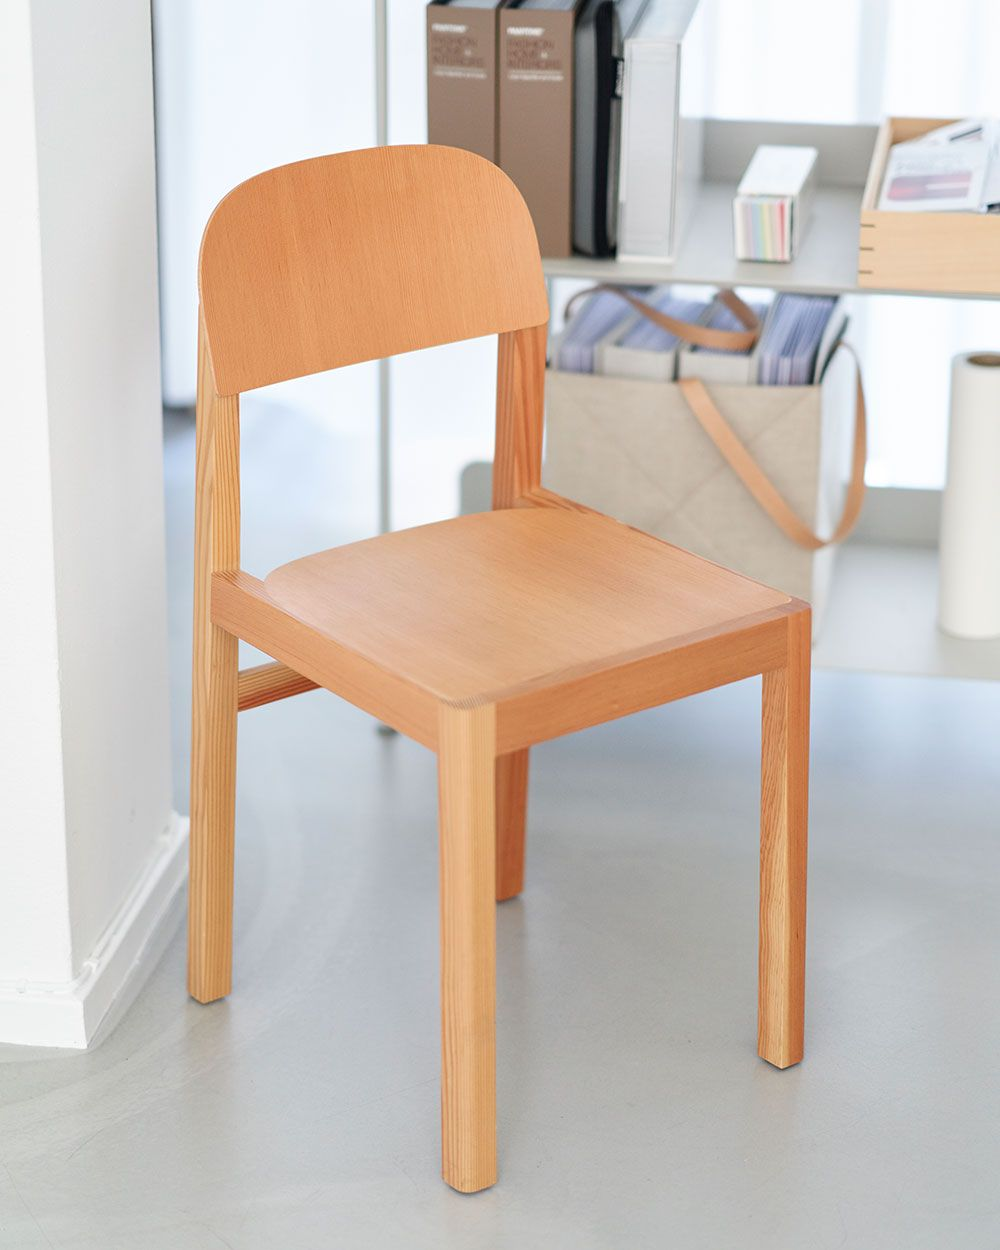 Scandinavian Interior Inspiration From Muuto The Workshop Chair Brings A Playful Approach To The Scandinavian Furniture Design Dining Room Decor Modern Chair